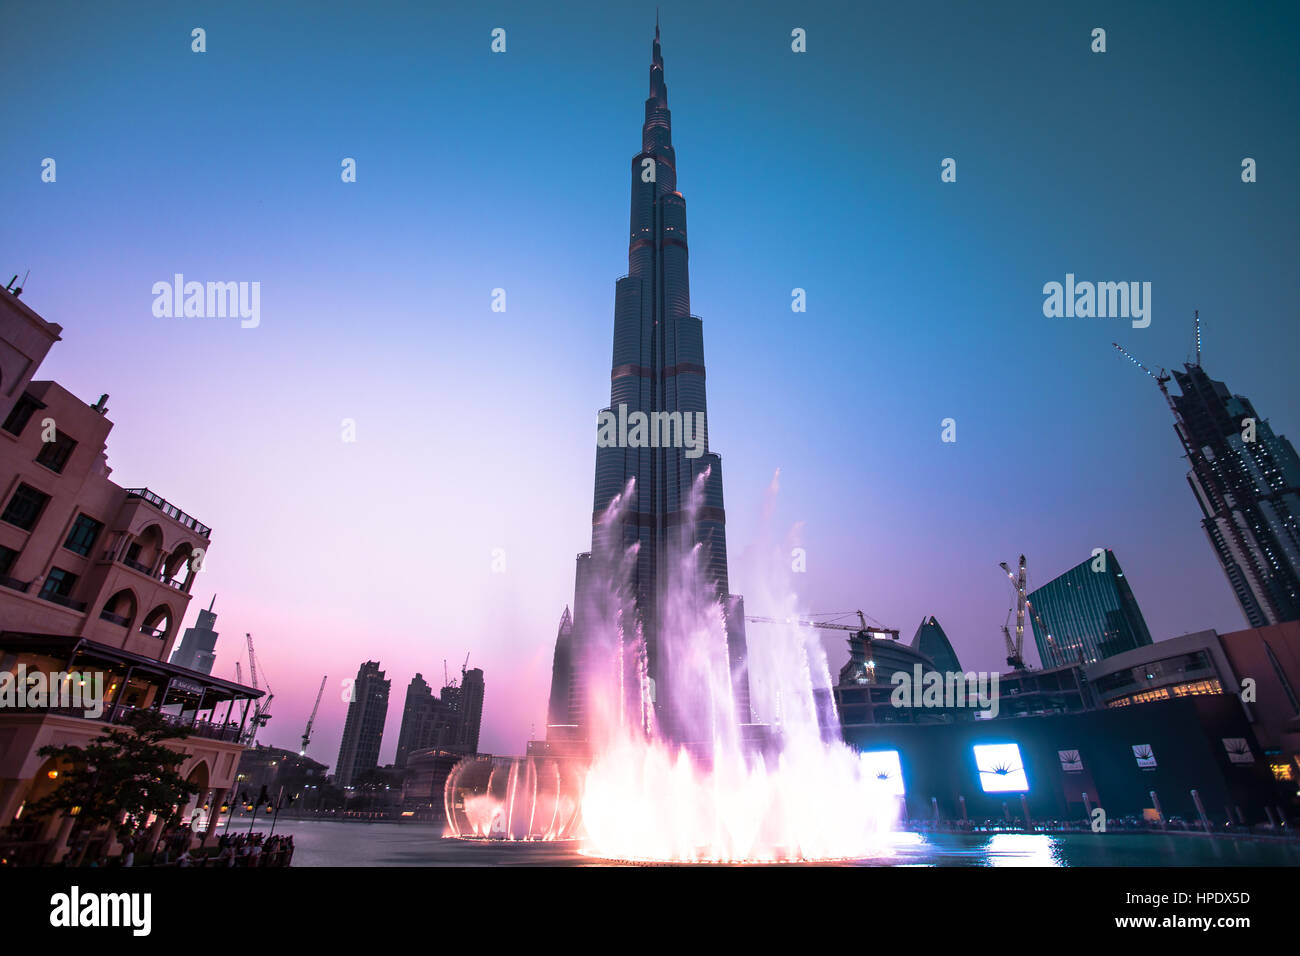 L'Étonnant gratte-ciel Burj Khalifa Photo Stock